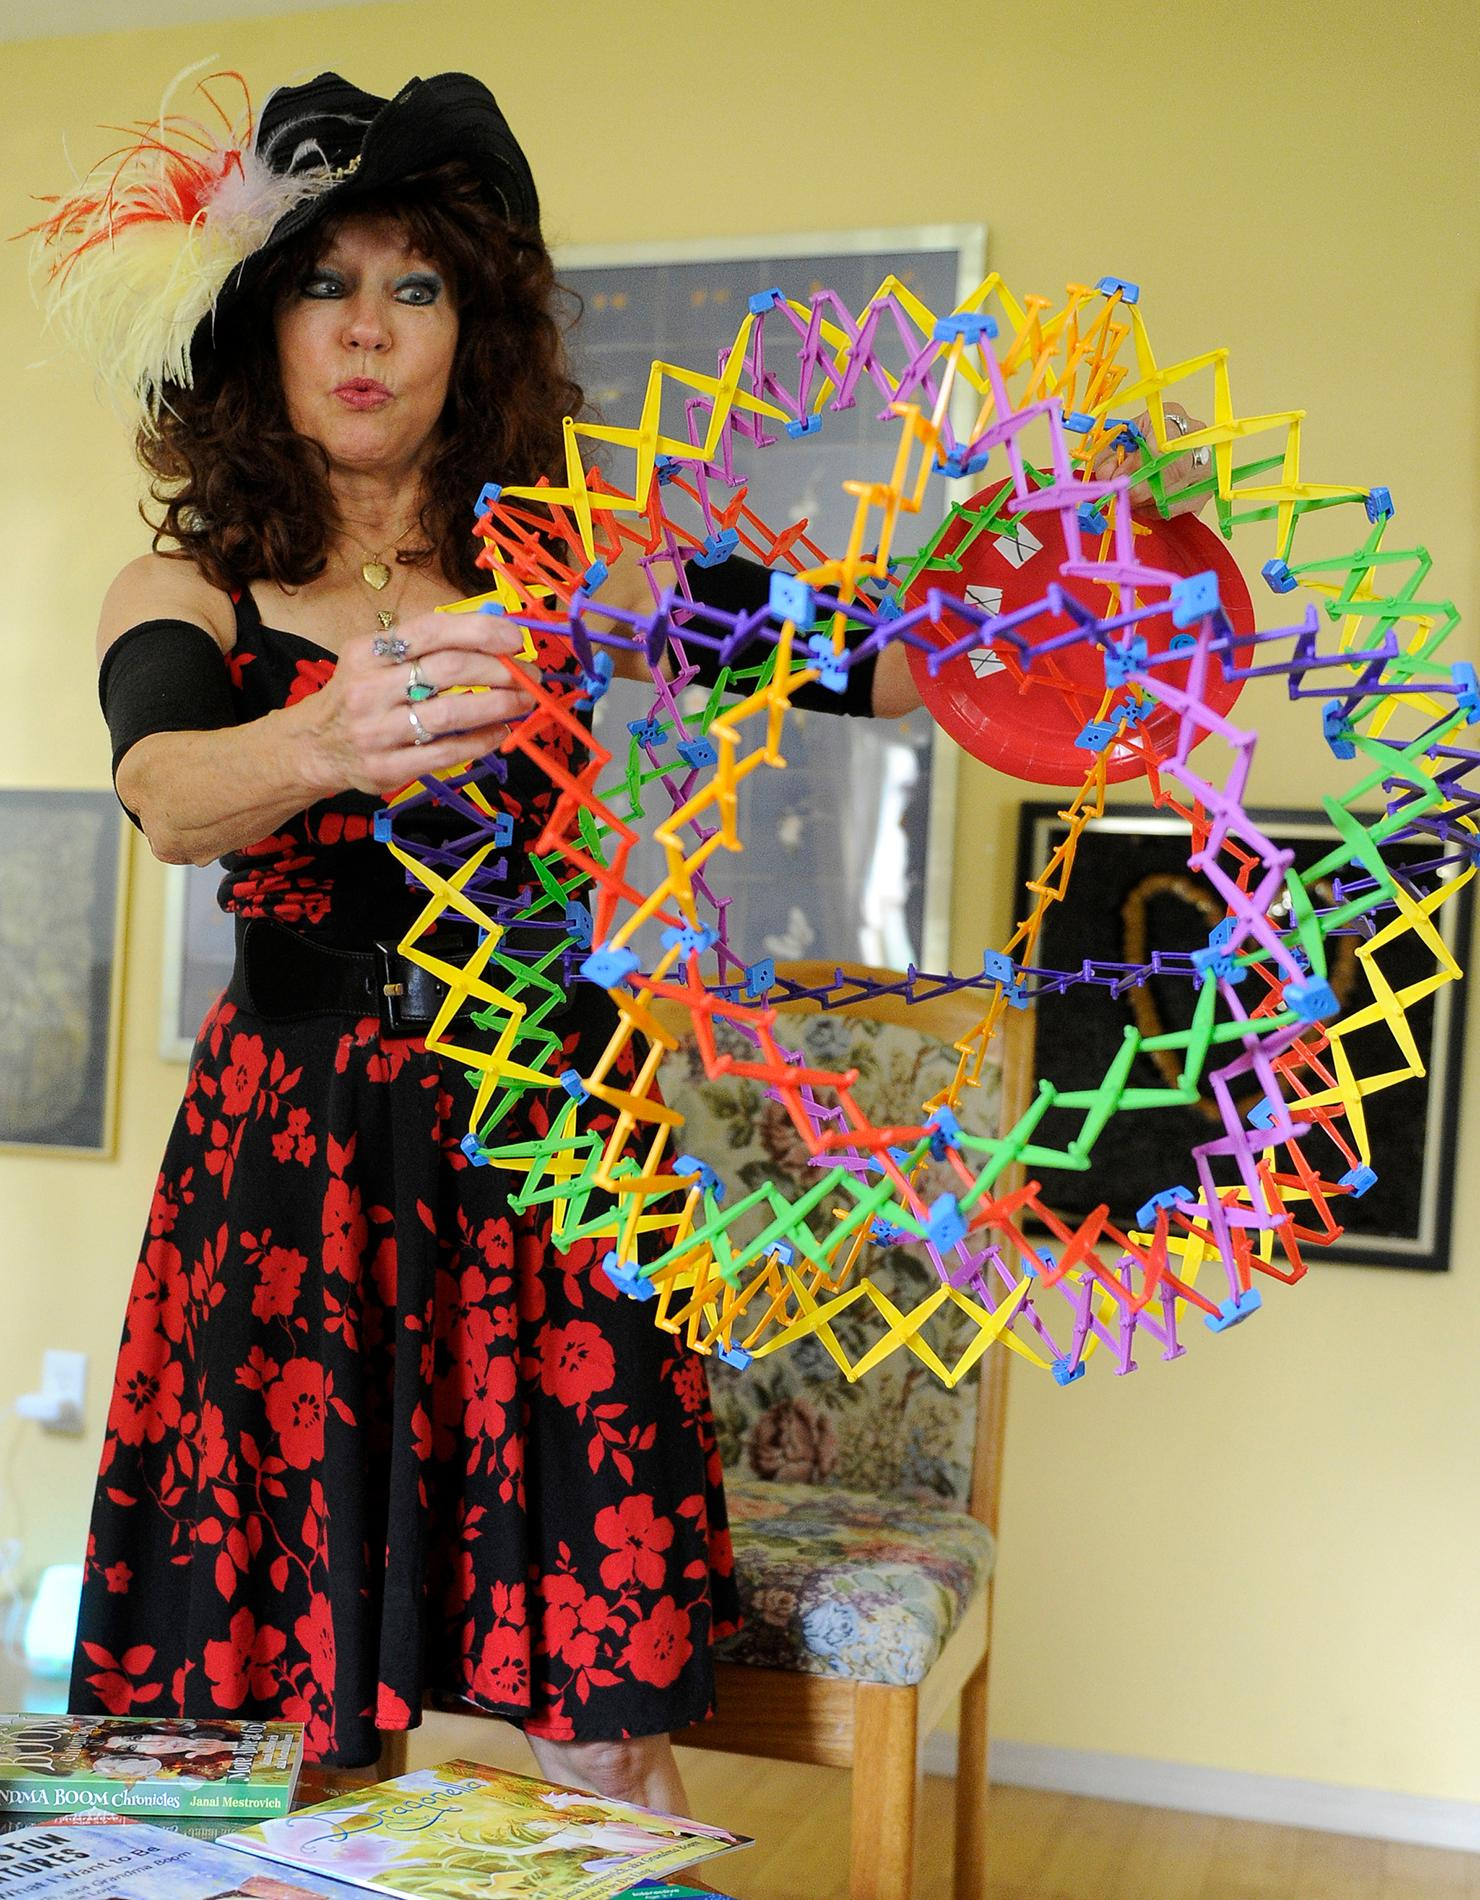 Andy Atkinson / Daily Tidings<br>Janai Mestrovich, aka Grandma Boom, shows how she uses 3-d objects inspiring children with life lessons in physical and mental wellbeing.